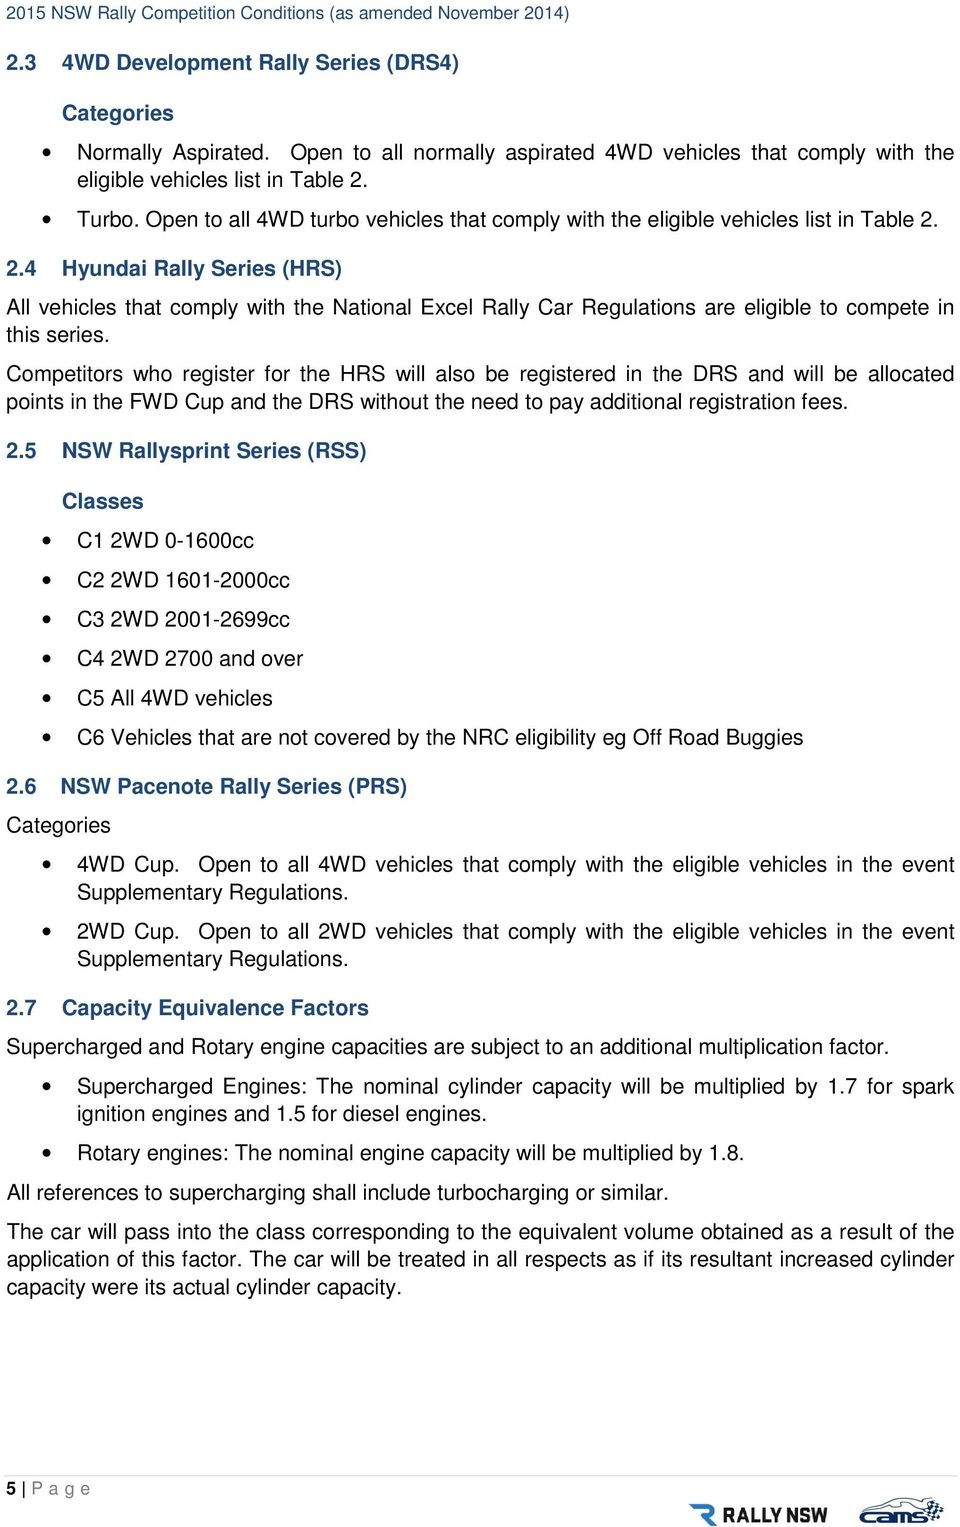 NSW Rally Competition Conditions 2015 (As Amended December